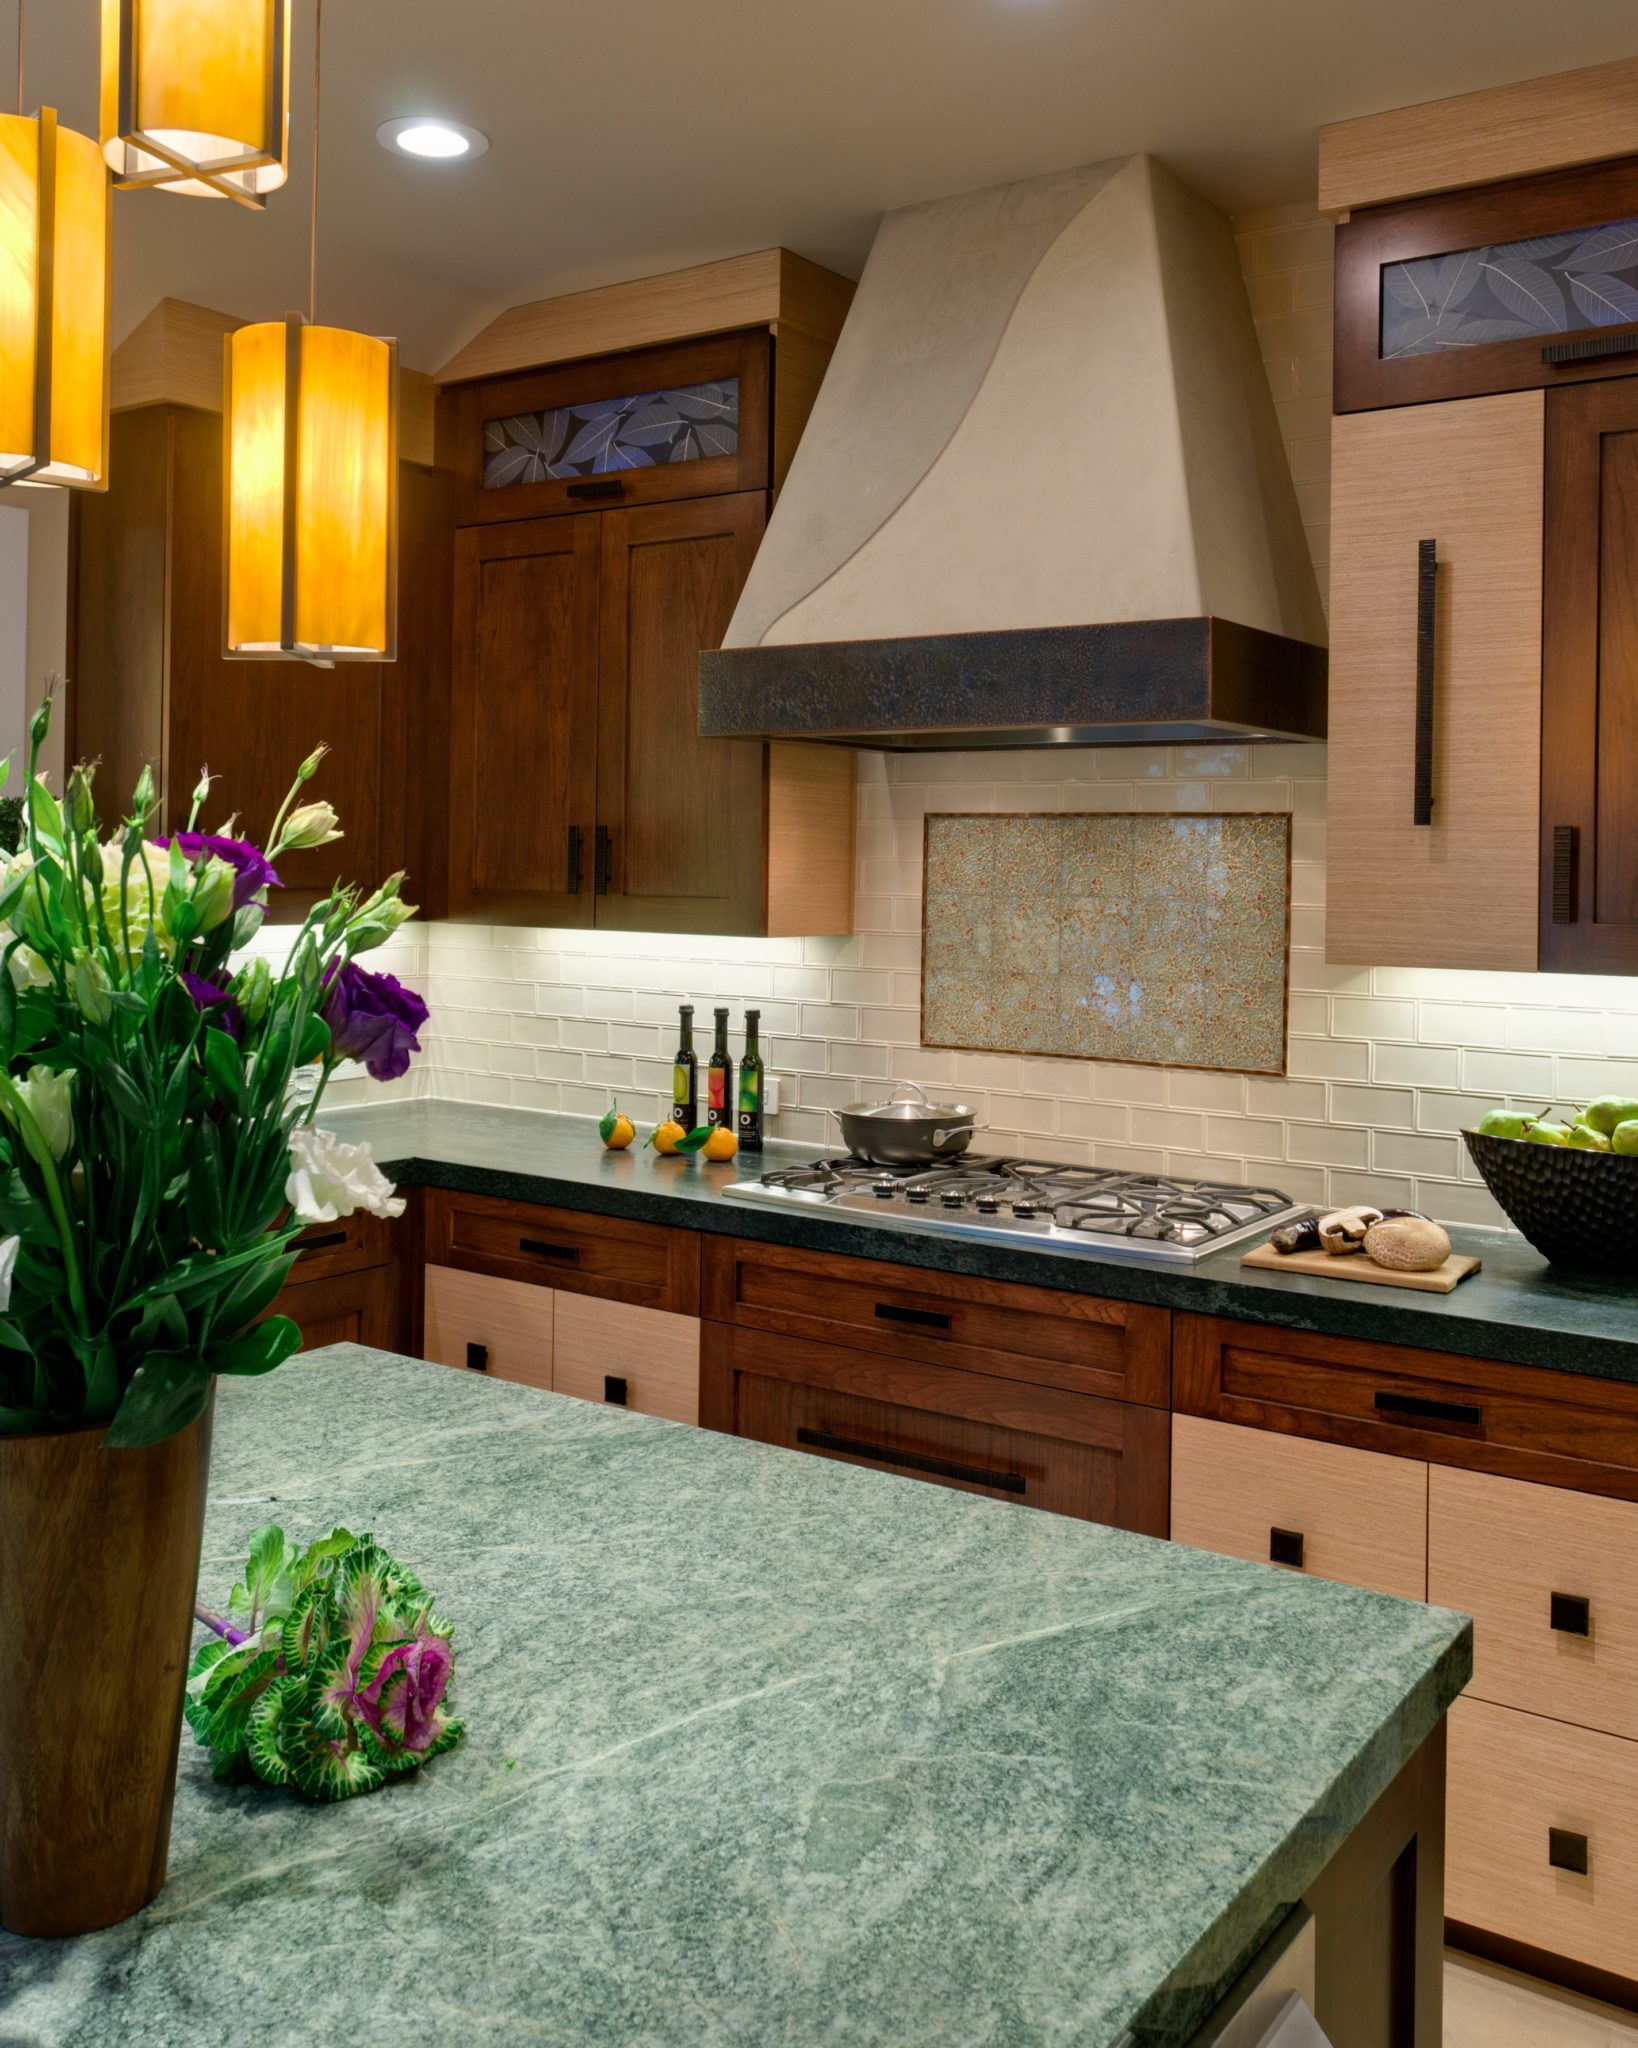 Kitchen showcases green marble, hammered metal hood and glass subway tile by Alison Whittaker Design